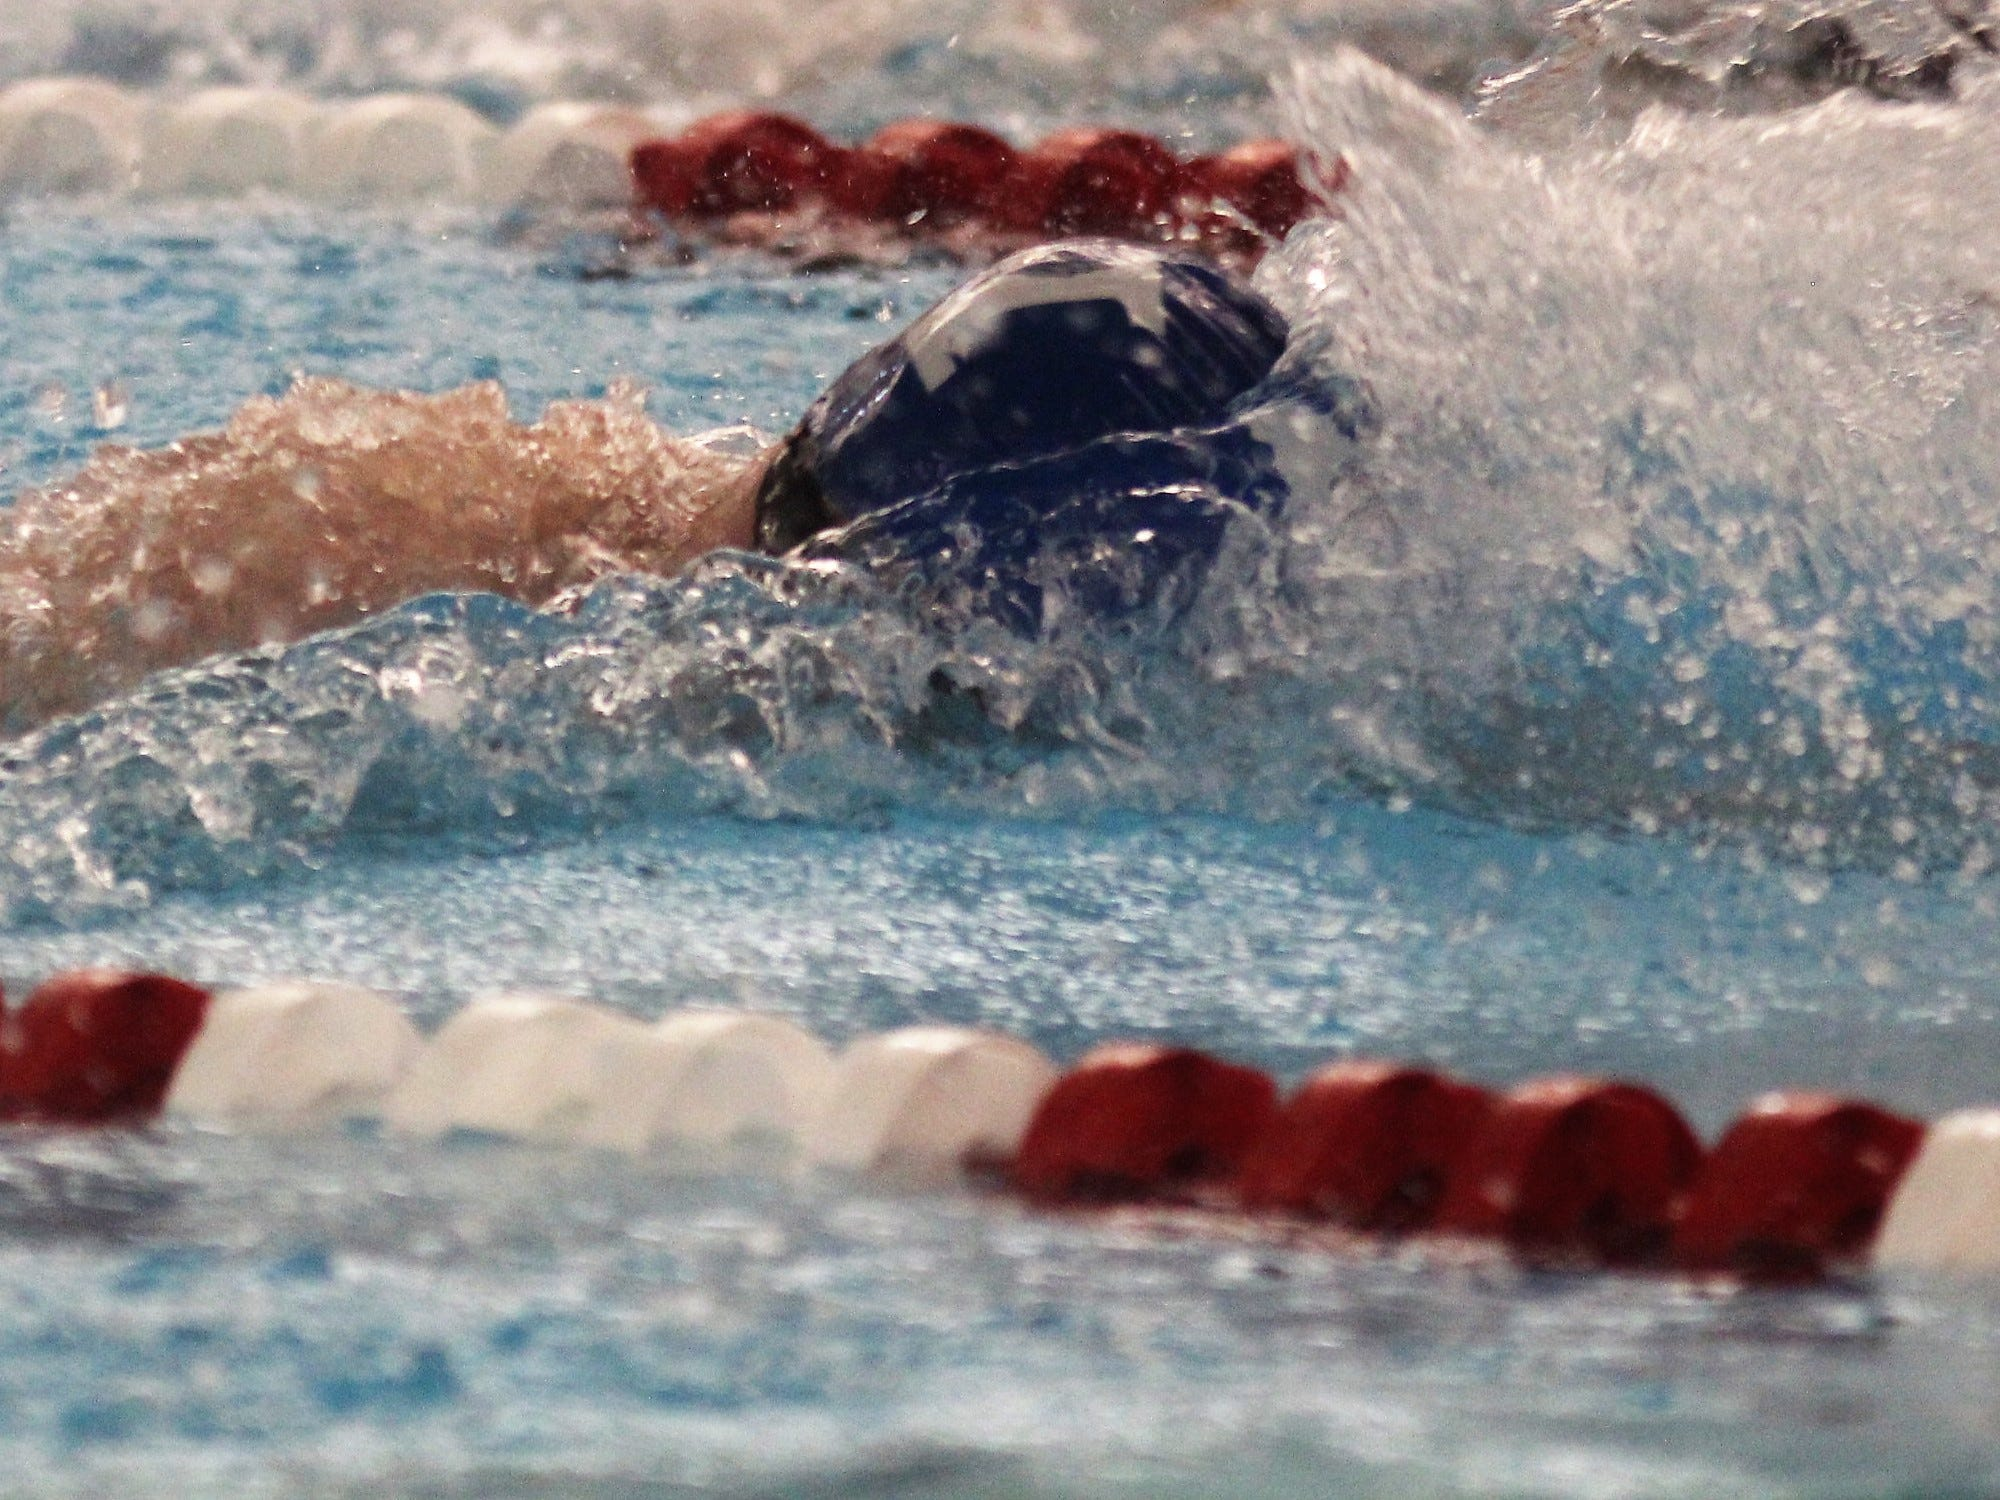 Highlands senior Brendan Conley swims the 200 freestyle during the KHSAA state boys swimming and diving championship Feb. 22, 2019 at the University of Louisville.